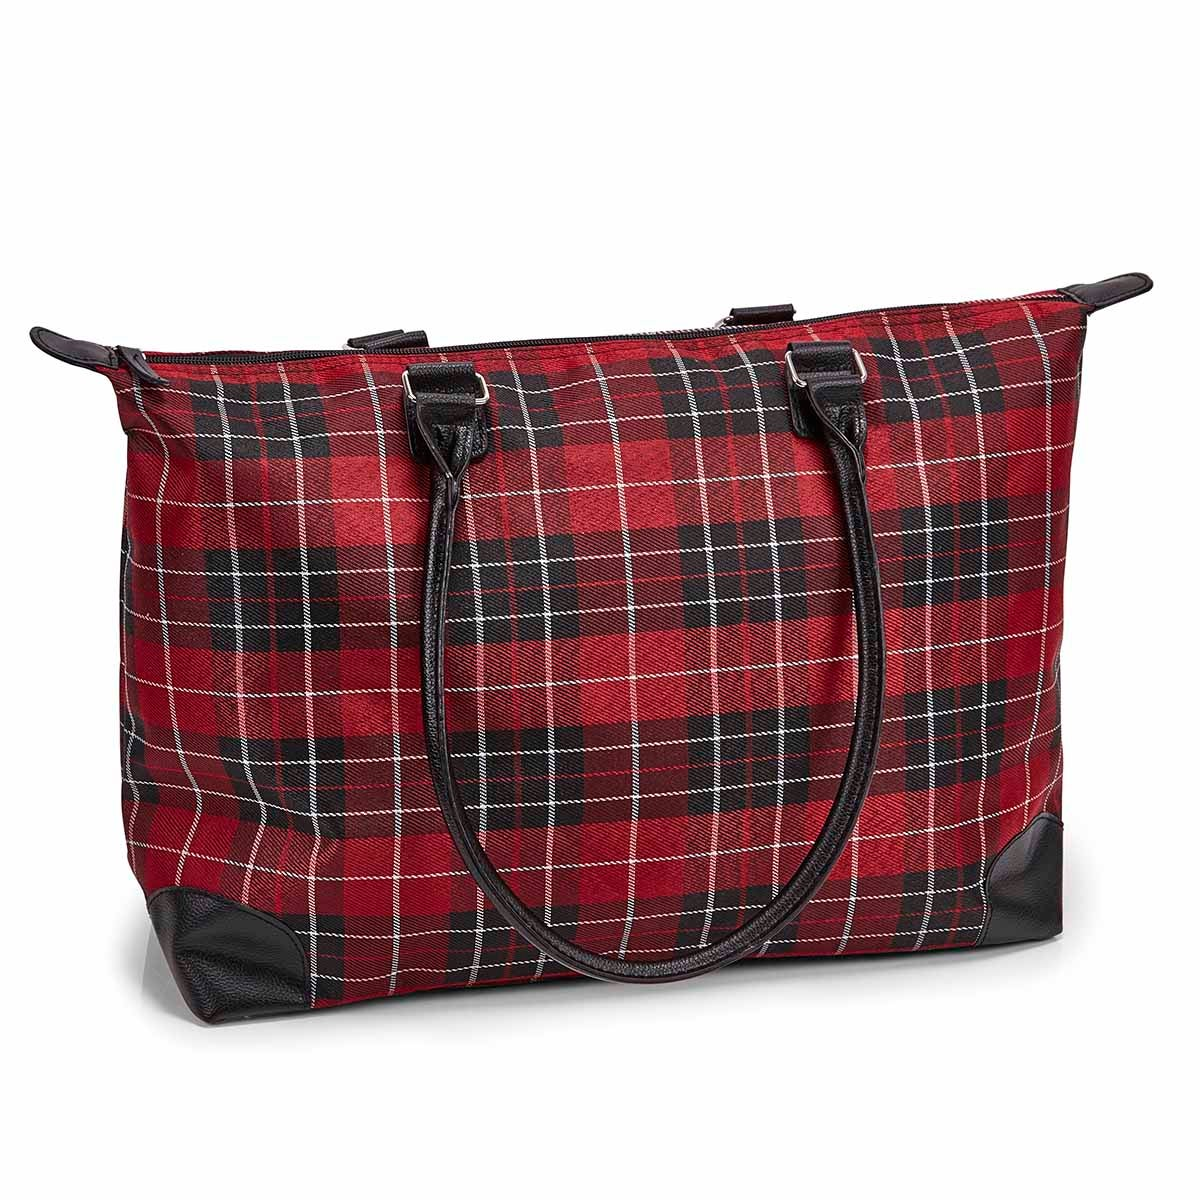 Women's red plaid large tote bag